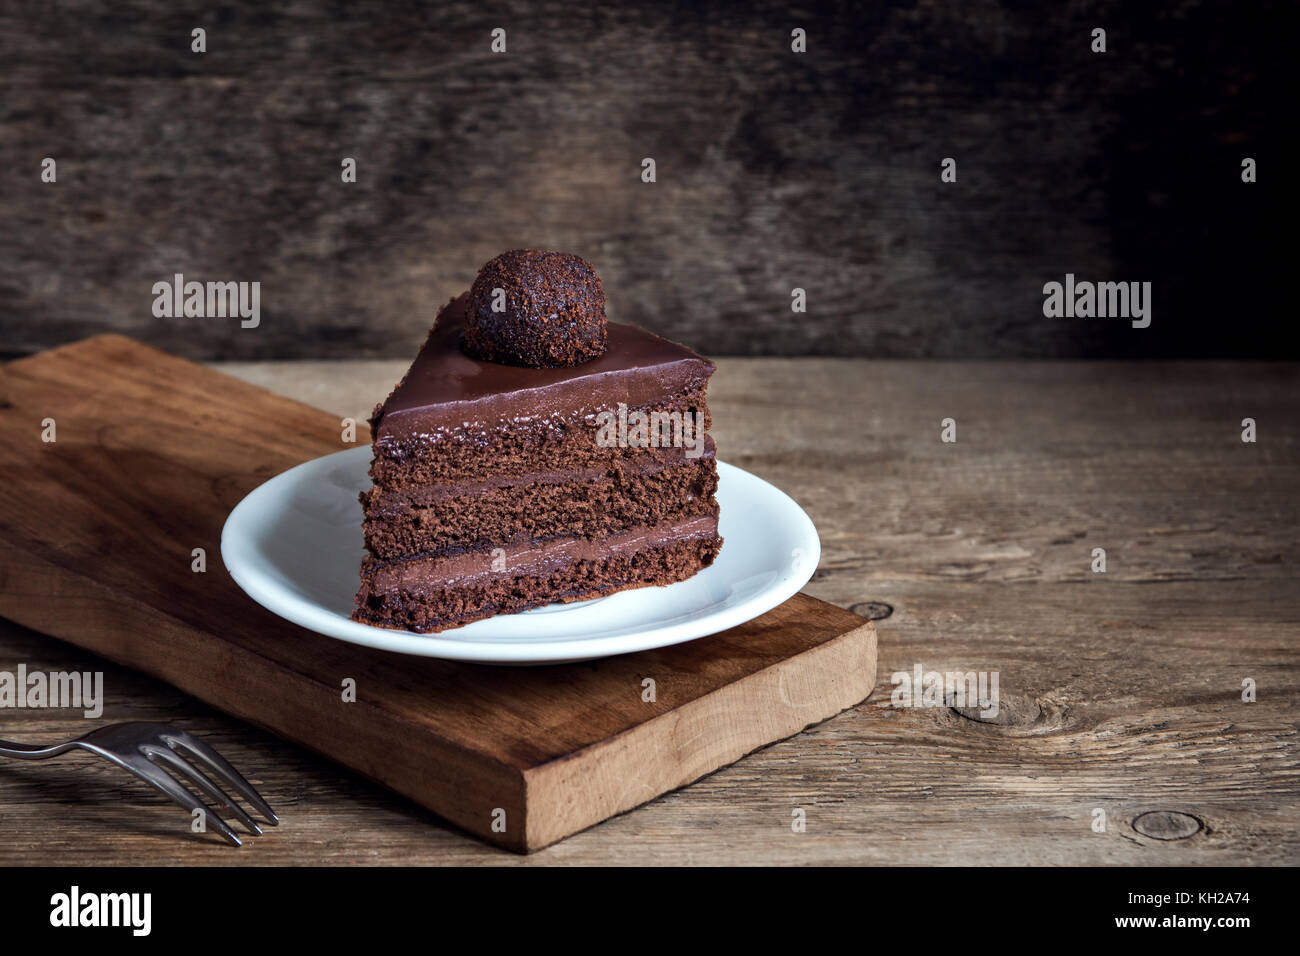 Recipe For Homemade Currant Cake With Cocoa Powder